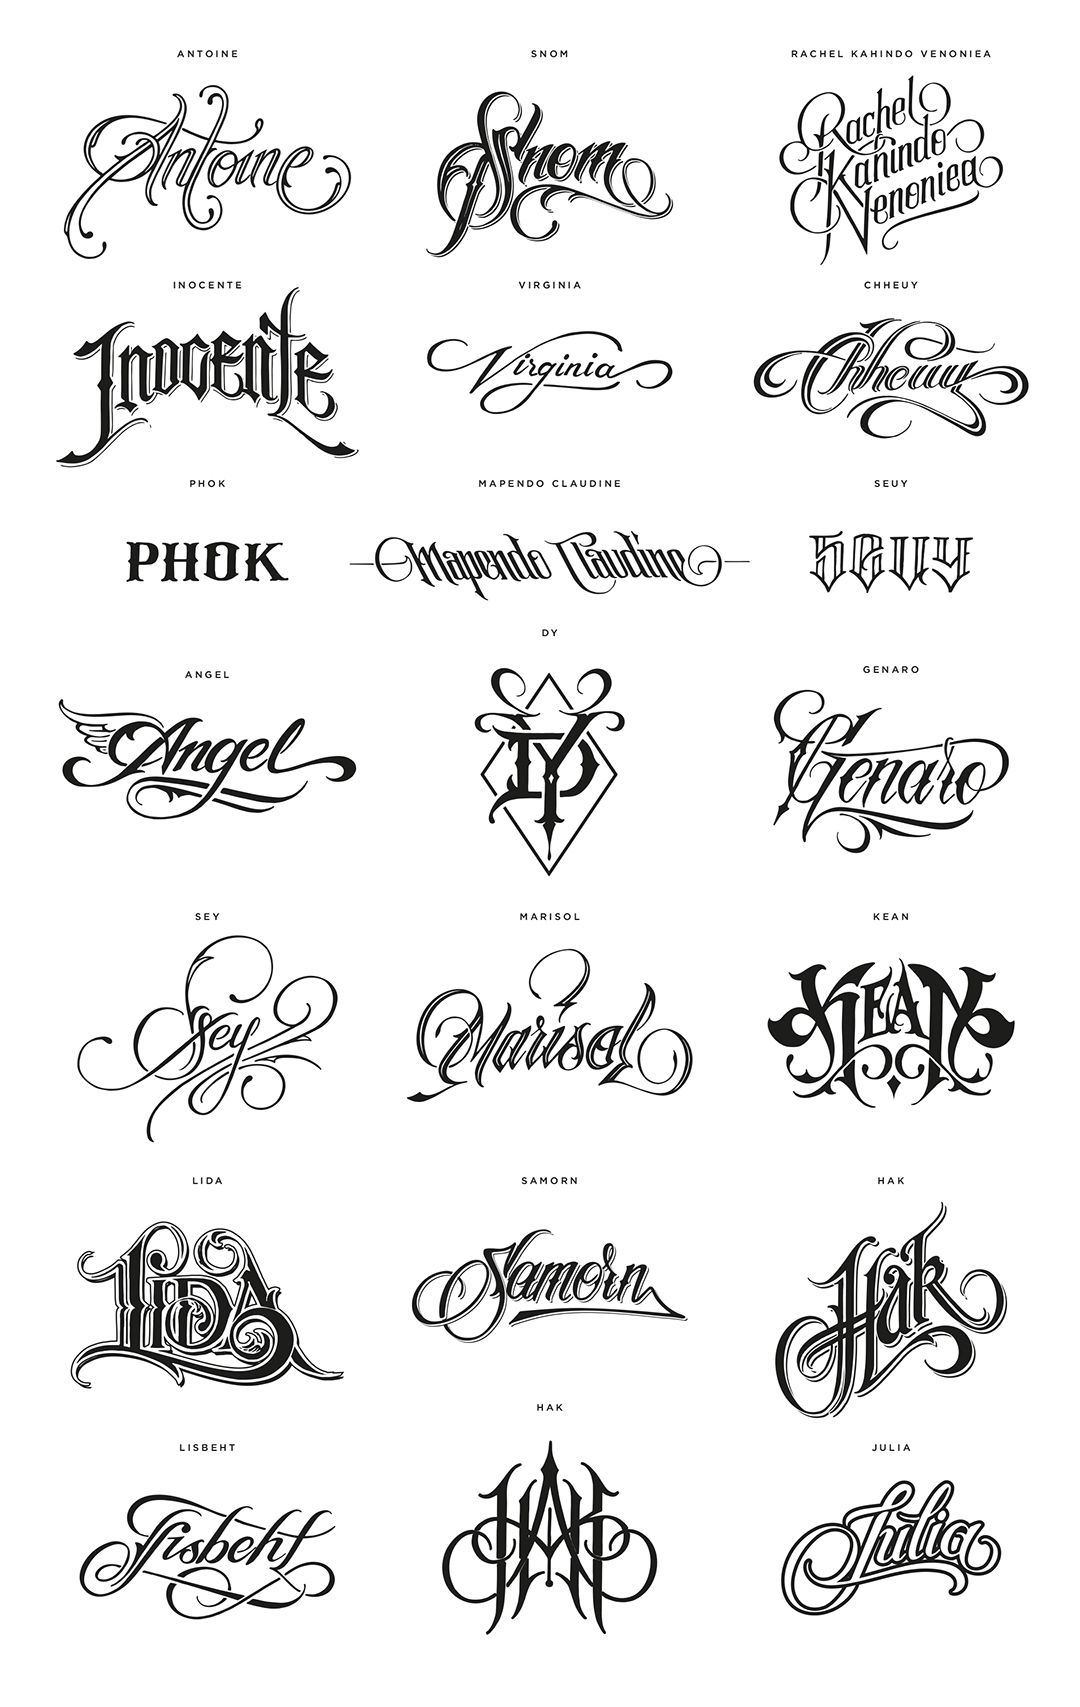 Martin Schmetzer Tattoo Lettering Fonts Tattoo Name Fonts Name